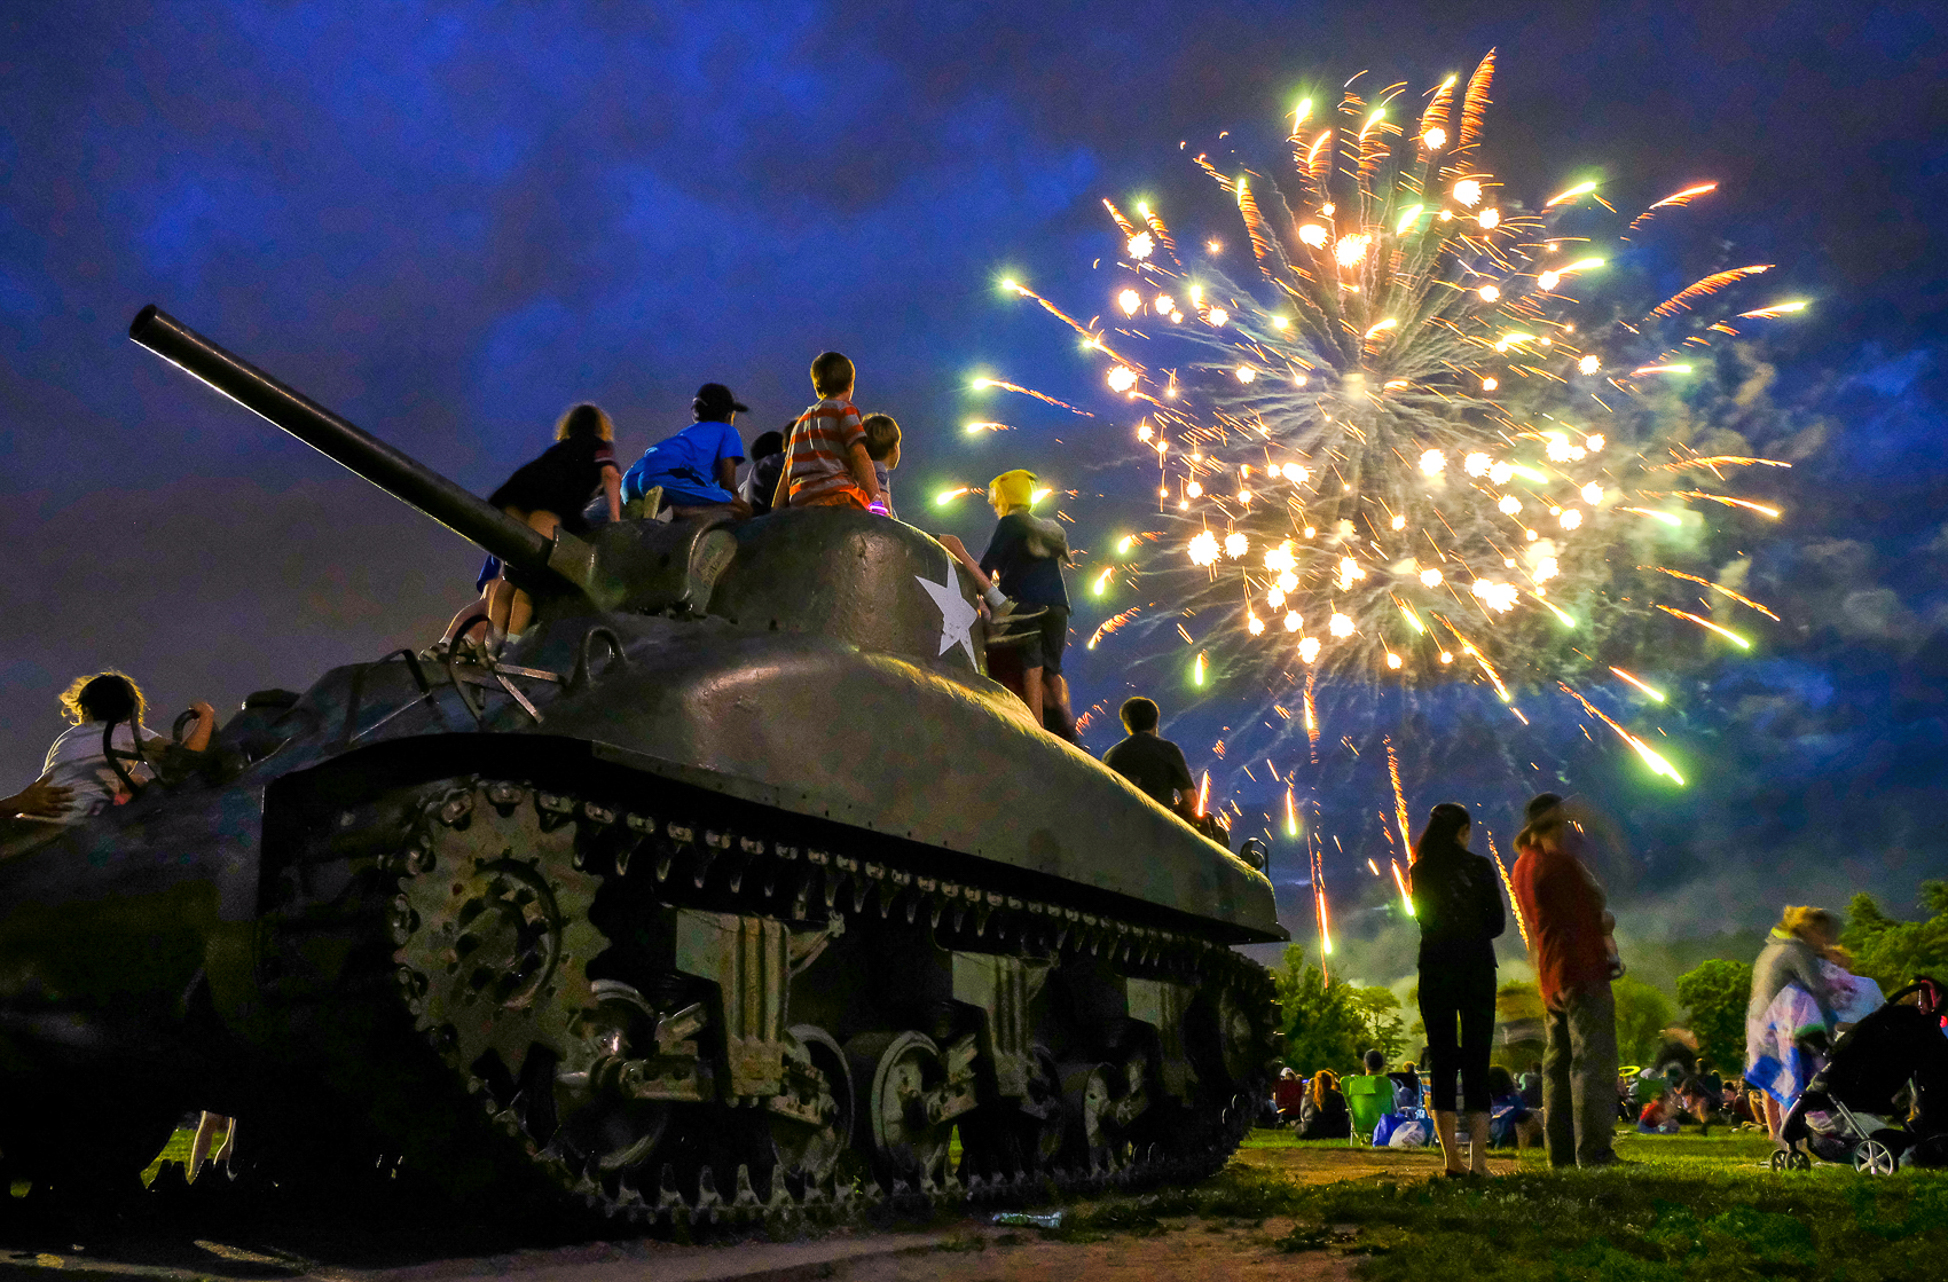 People enjoy a fireworks display and music at Patton Park in Hamilton at the conclusion of the Community Block Party, Sunday, June 25, 2017. [Wicked Local Staff Photo / David Sokol]